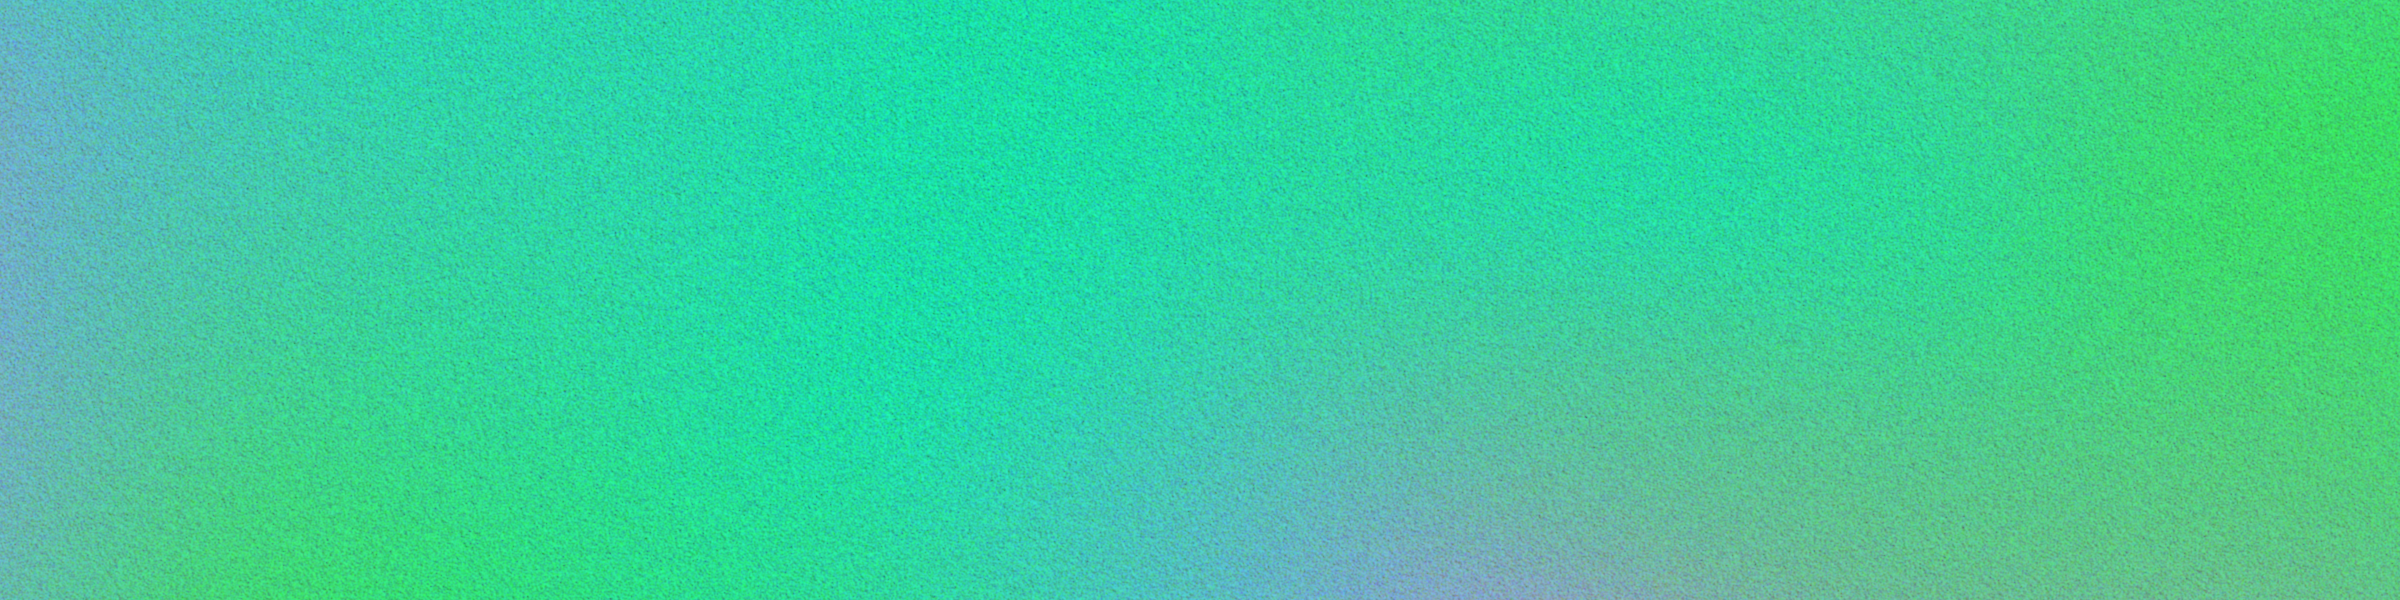 Cover.1330300.2400x600